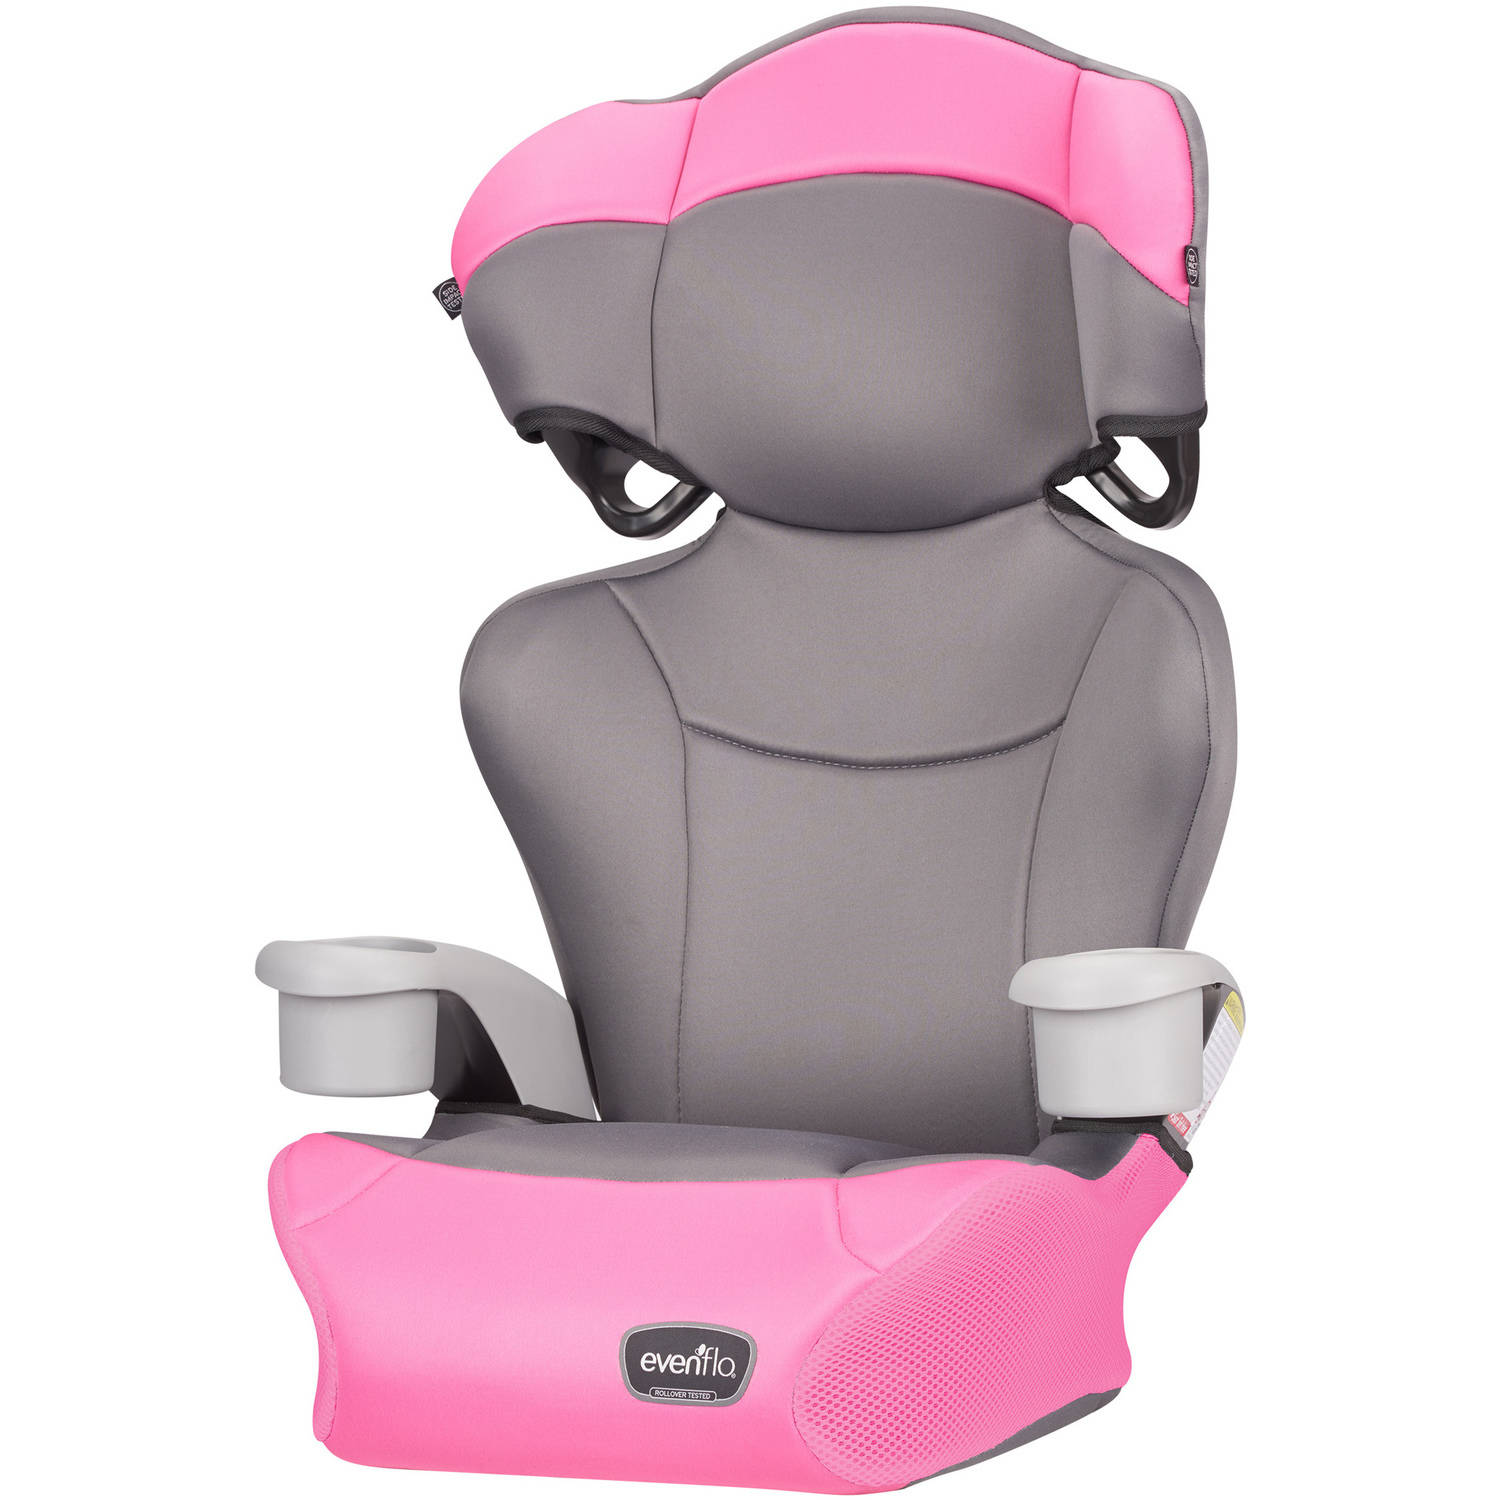 Evenflo Big Kid High-Back Booster Car Seat, Pink Dove